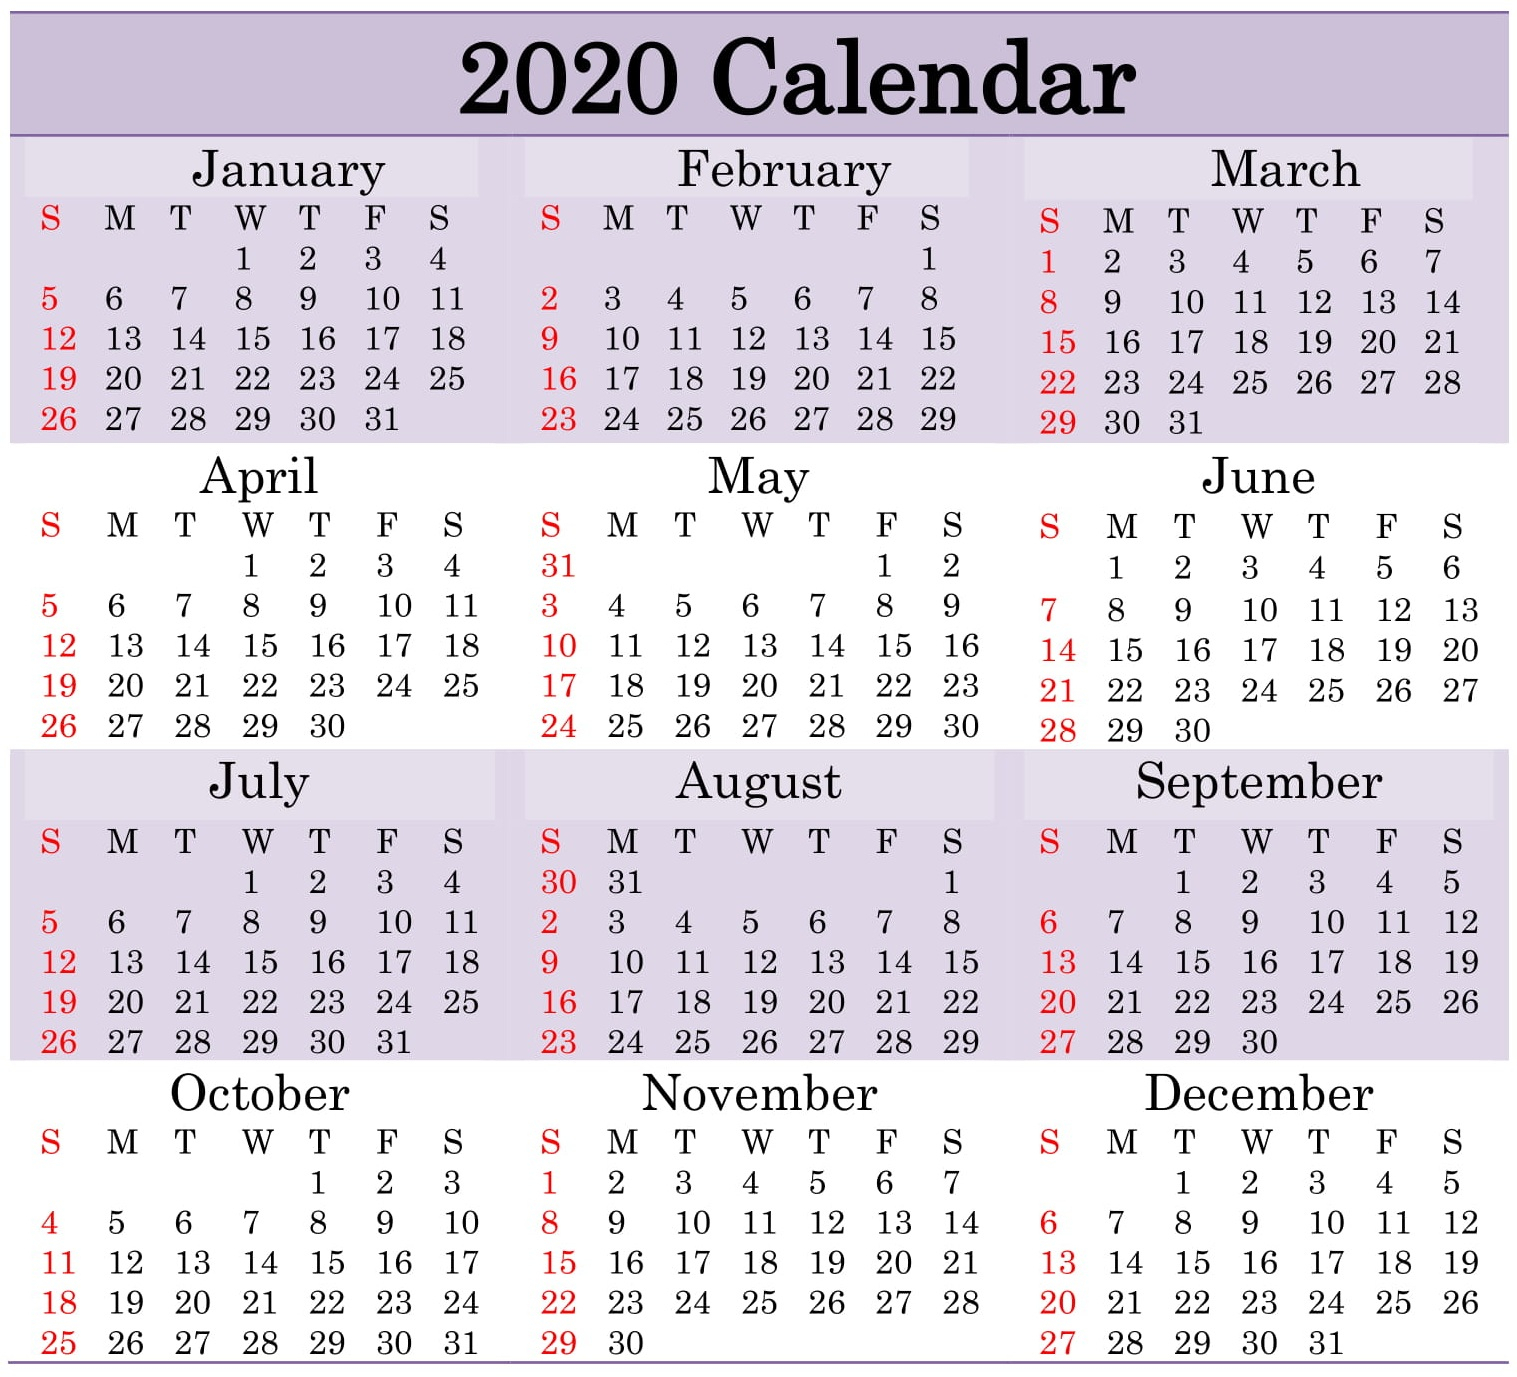 Printable 2020 Calendar Word Document  Latest Printable for Julian Date Calender 2020